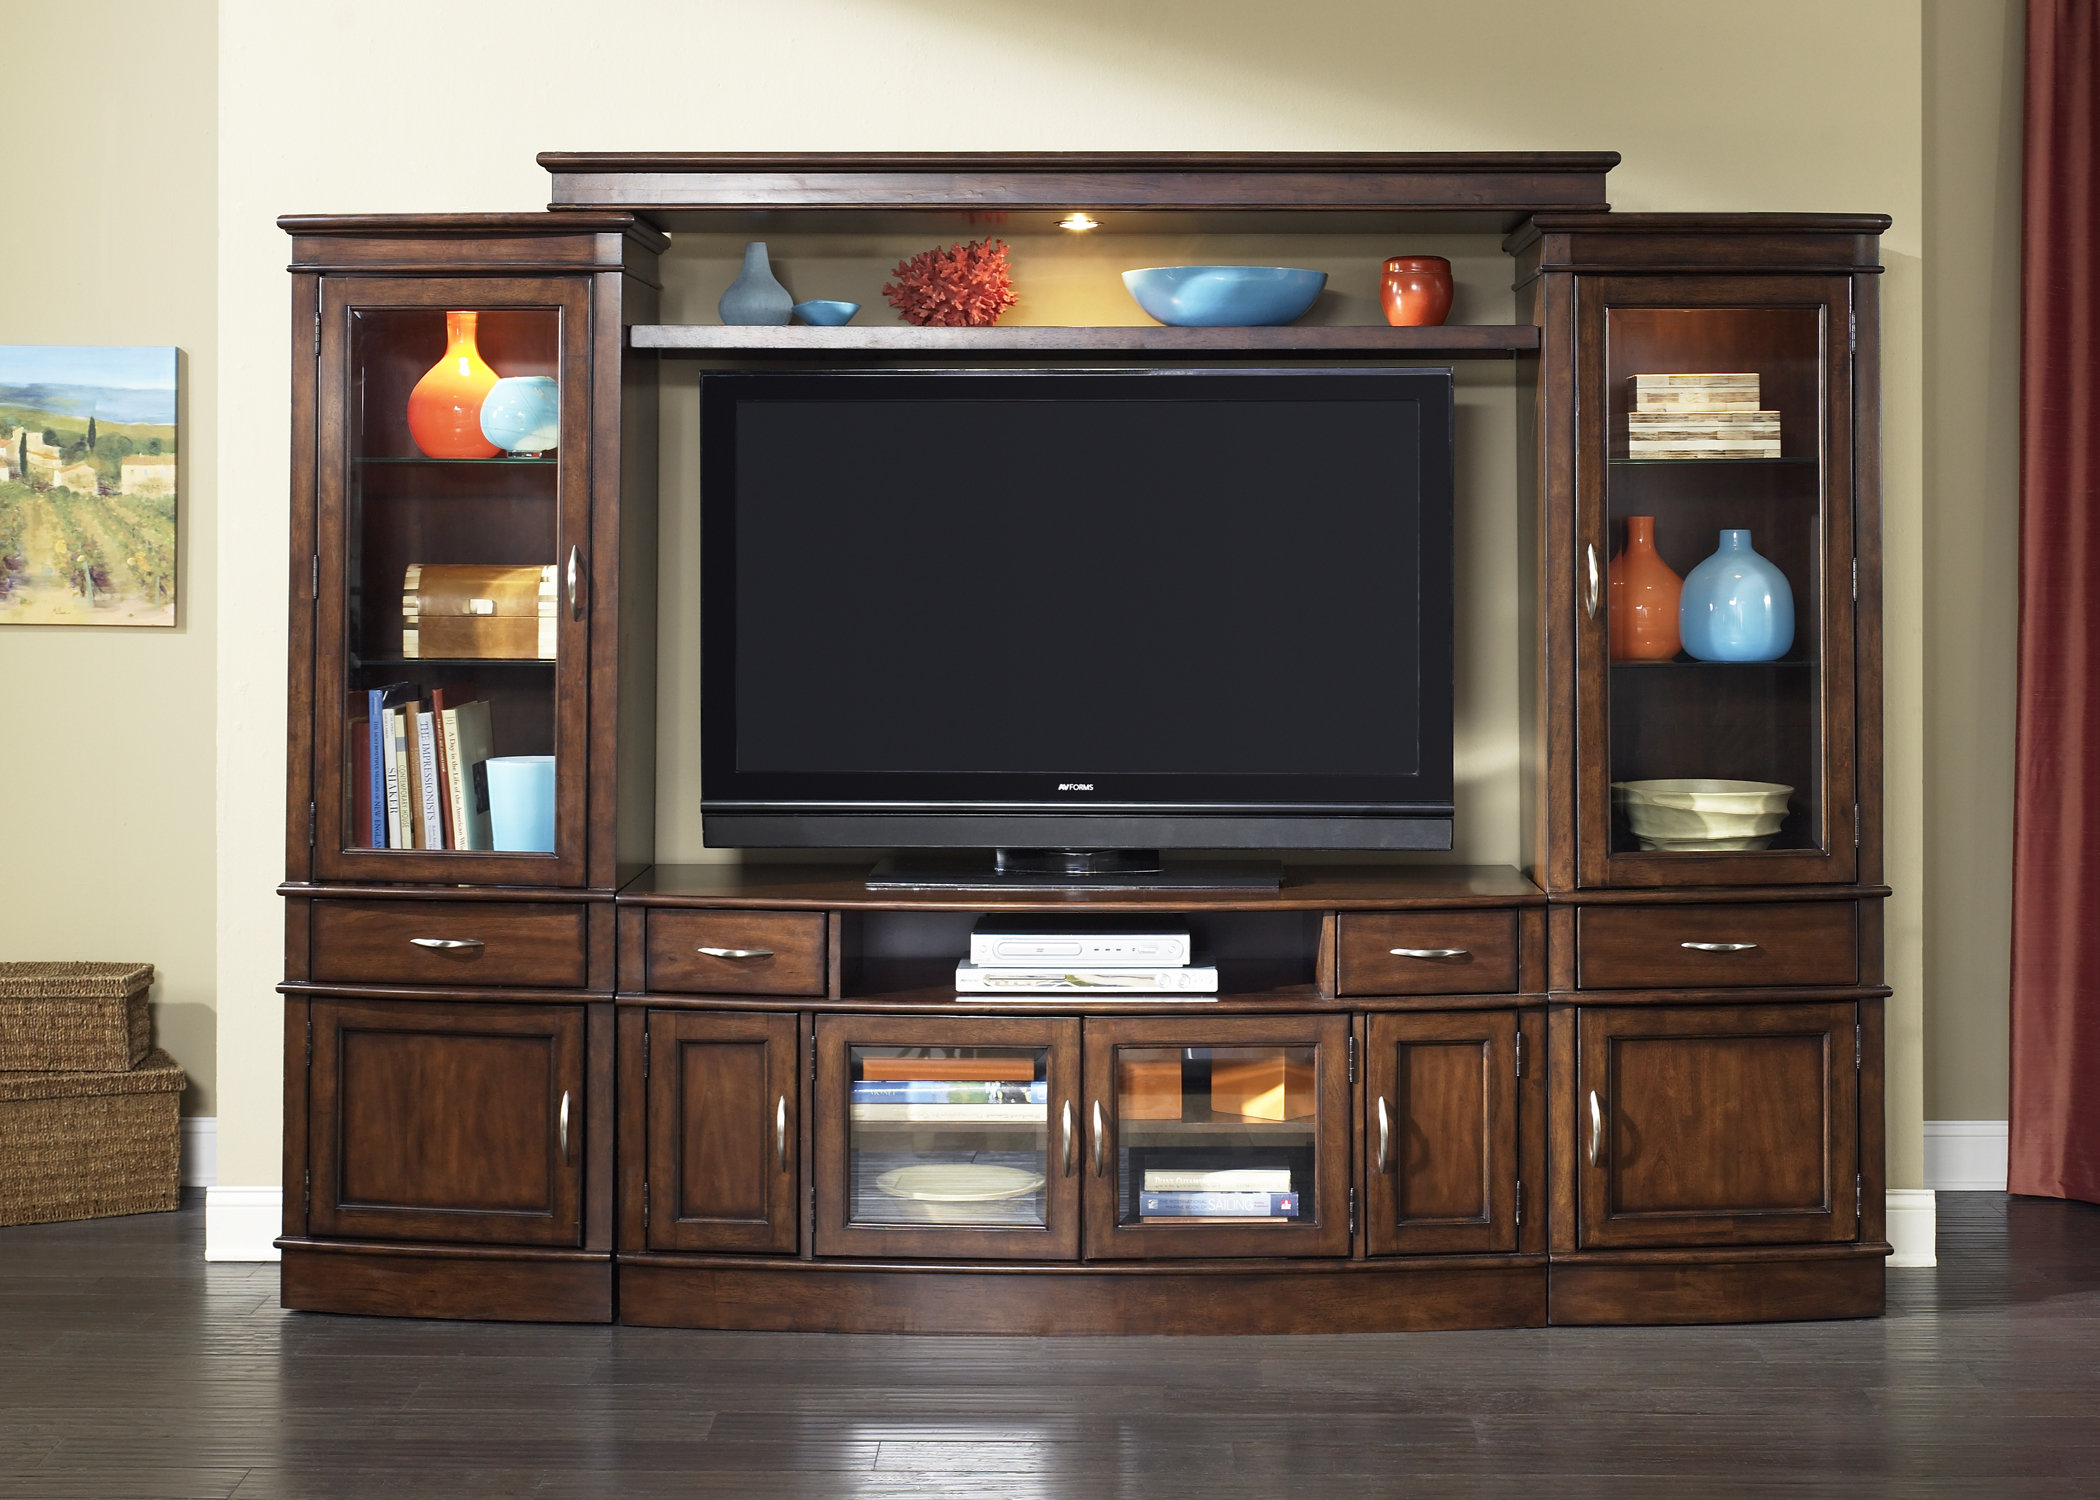 Tv Stands With Hutch You'll Love | Wayfair With Regard To Kilian Grey 74 Inch Tv Stands (View 7 of 30)